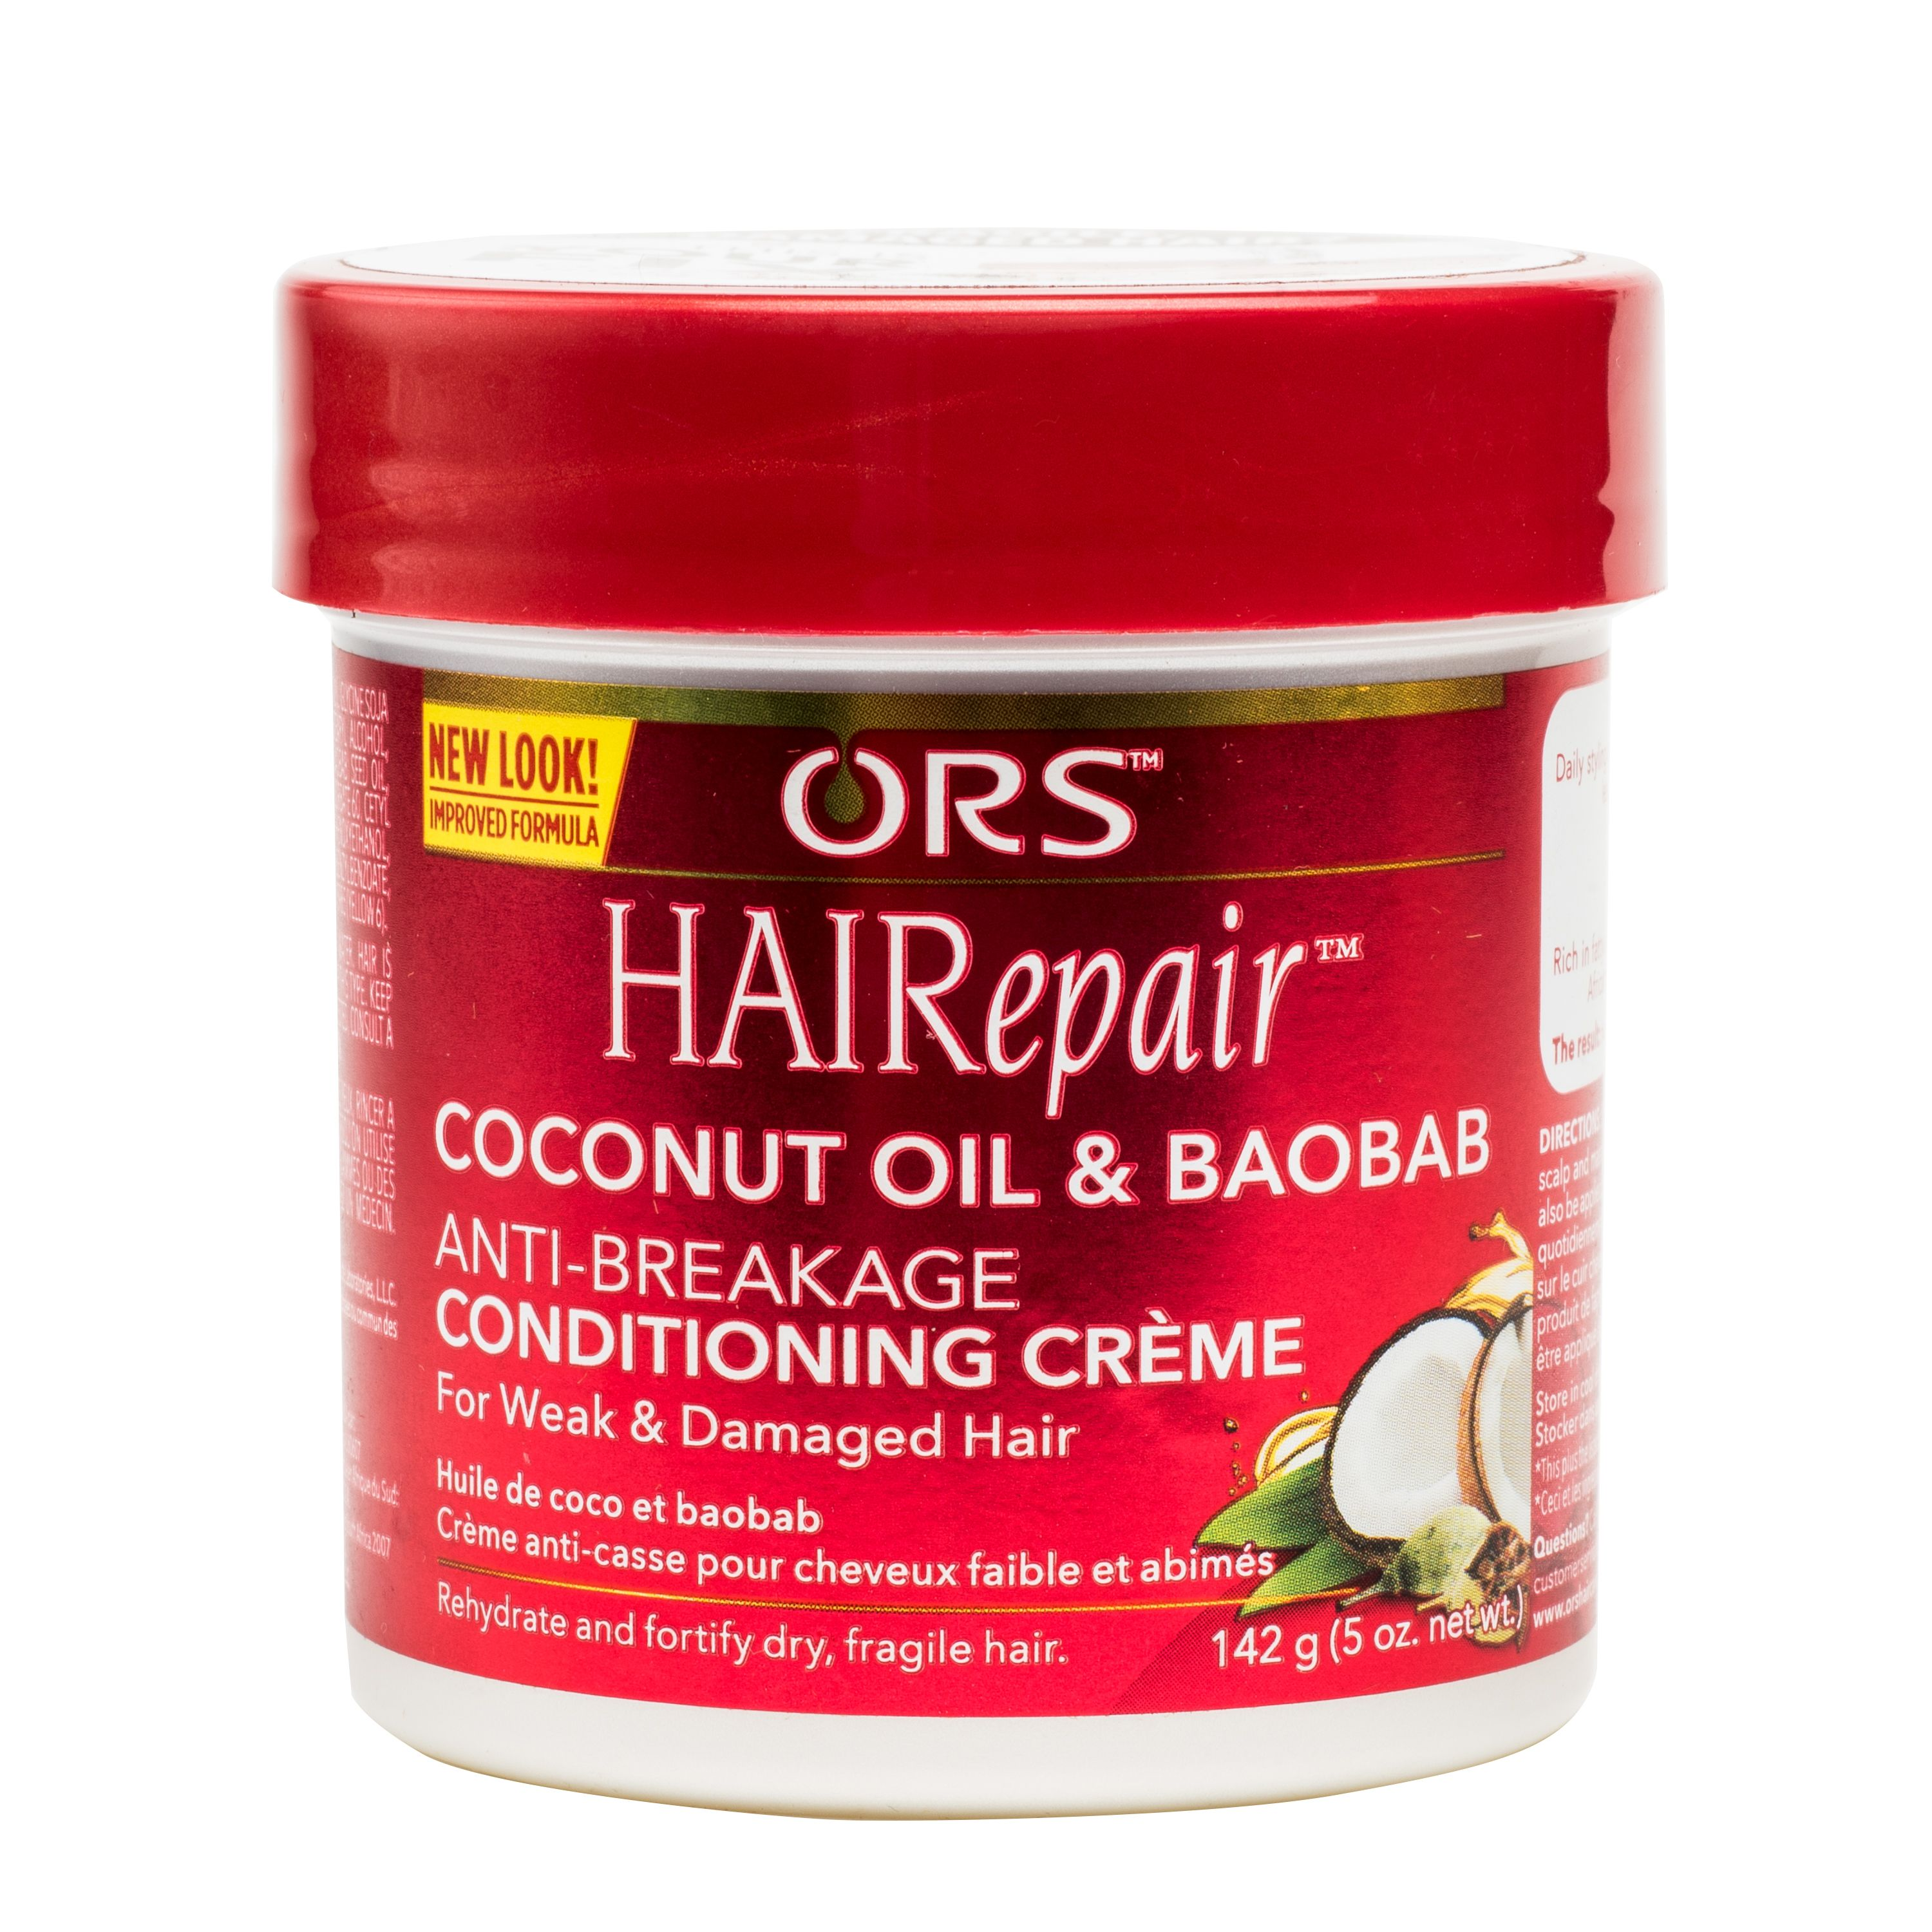 ORS HAIRepair Coconut Oil & Baobab Anti-Breakage Conditioning Crème 5 oz